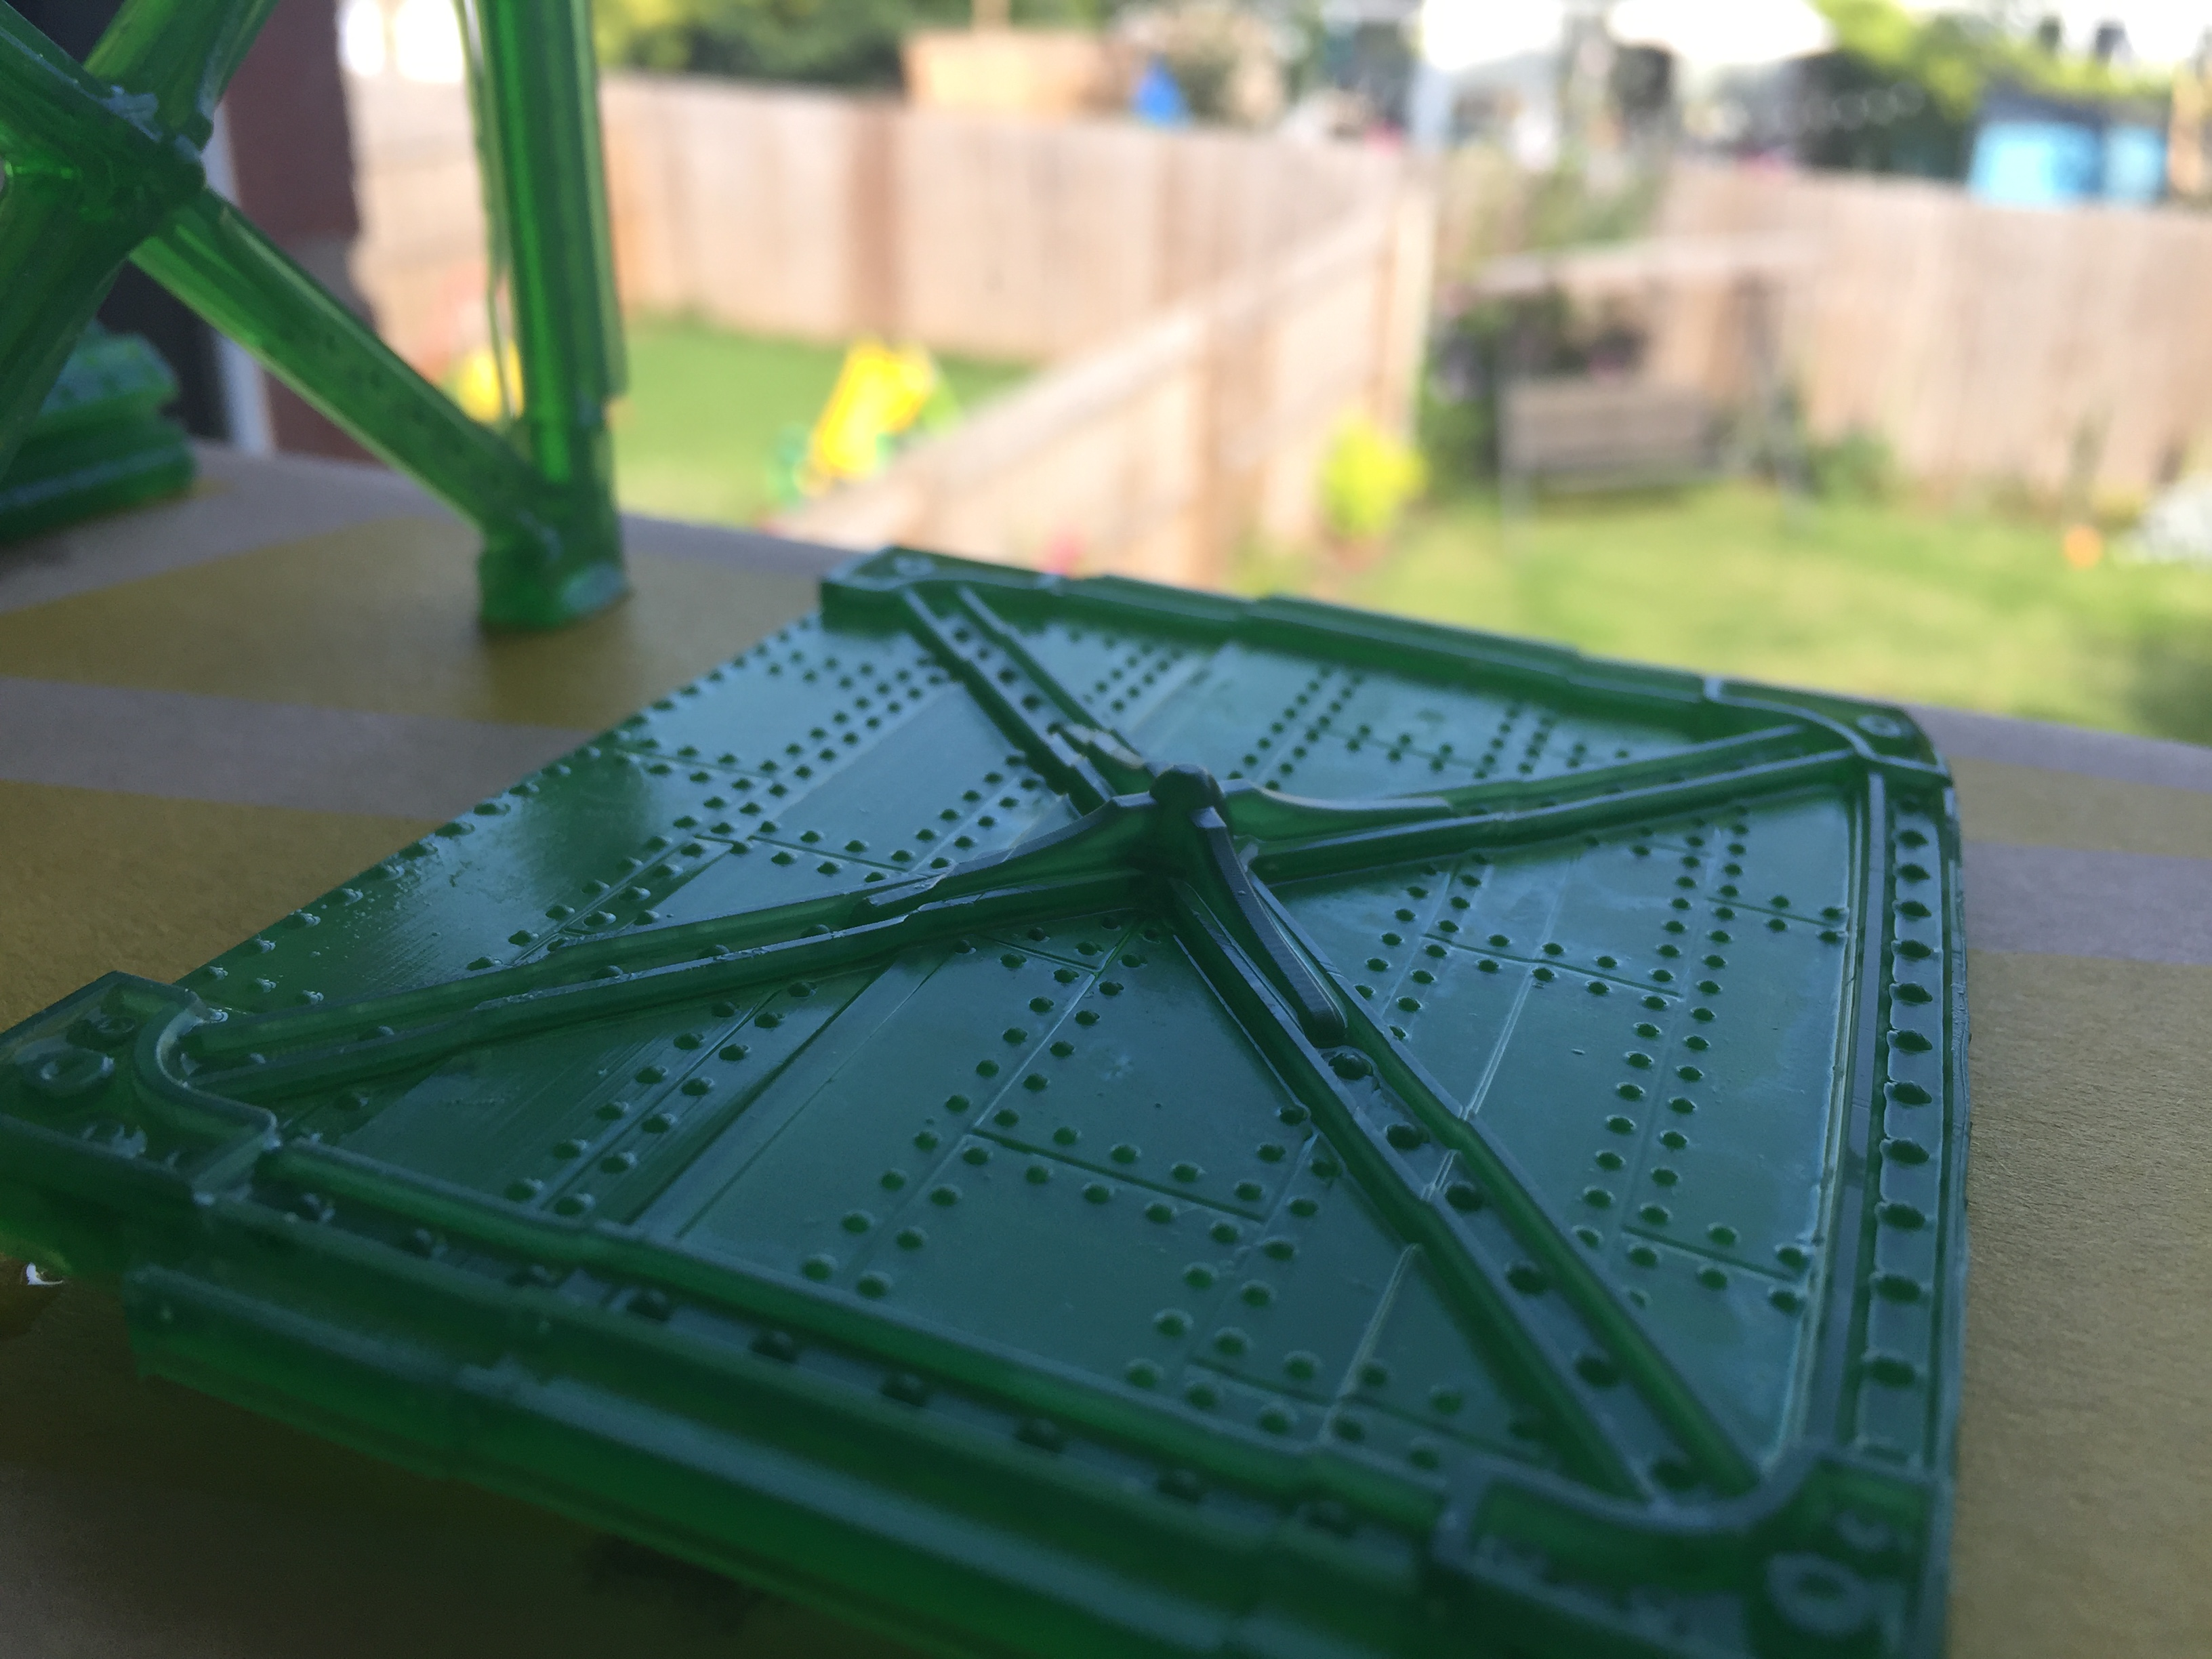 3D Printing with the Anycubic Photon – One month in – Painting In